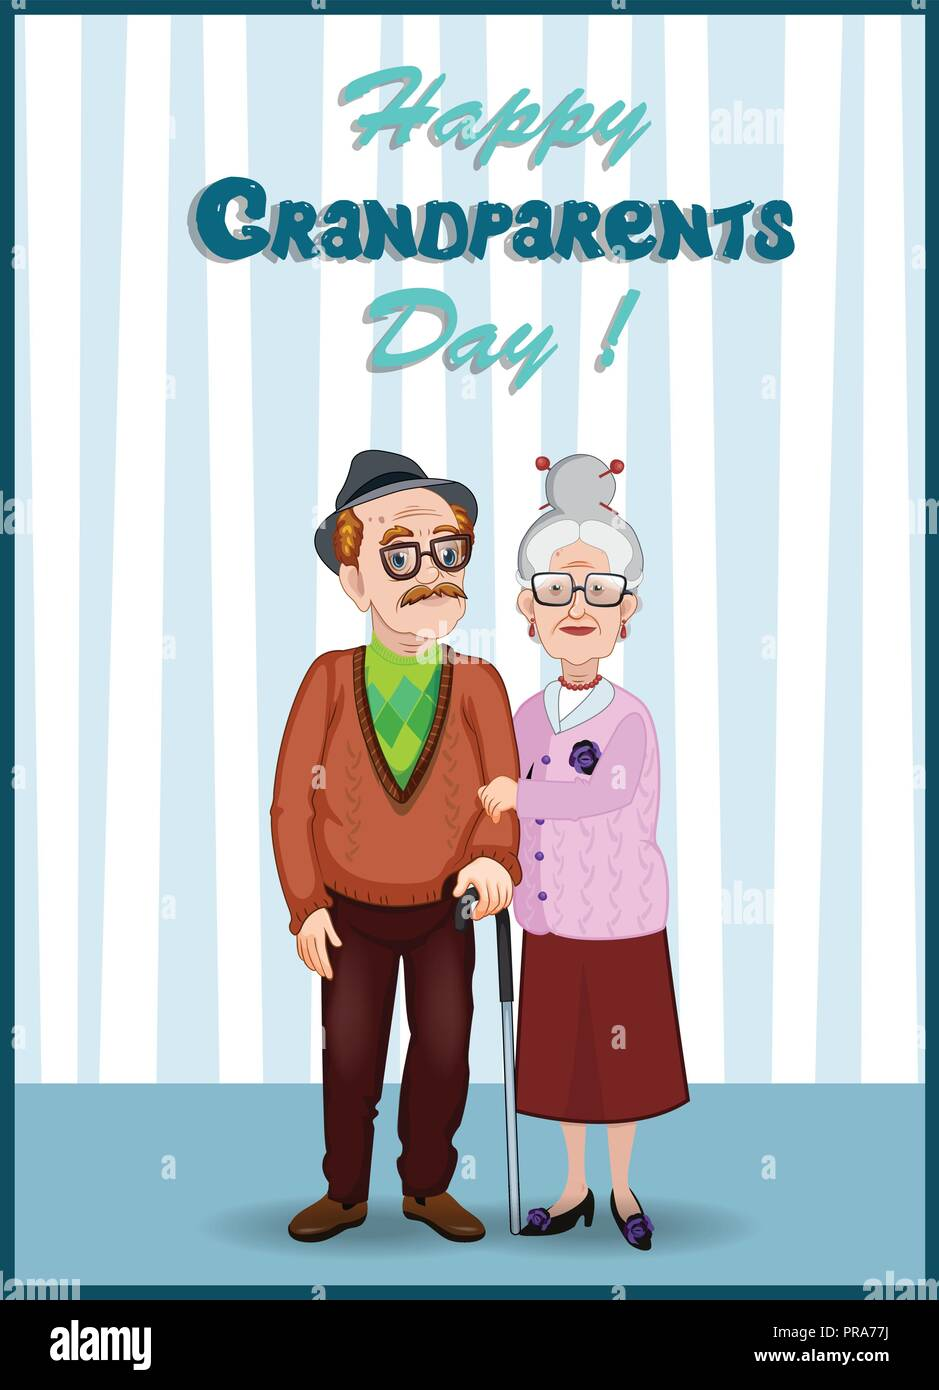 Happy Grandparents Day Greeting Card Cartoon Vector Illustration Of